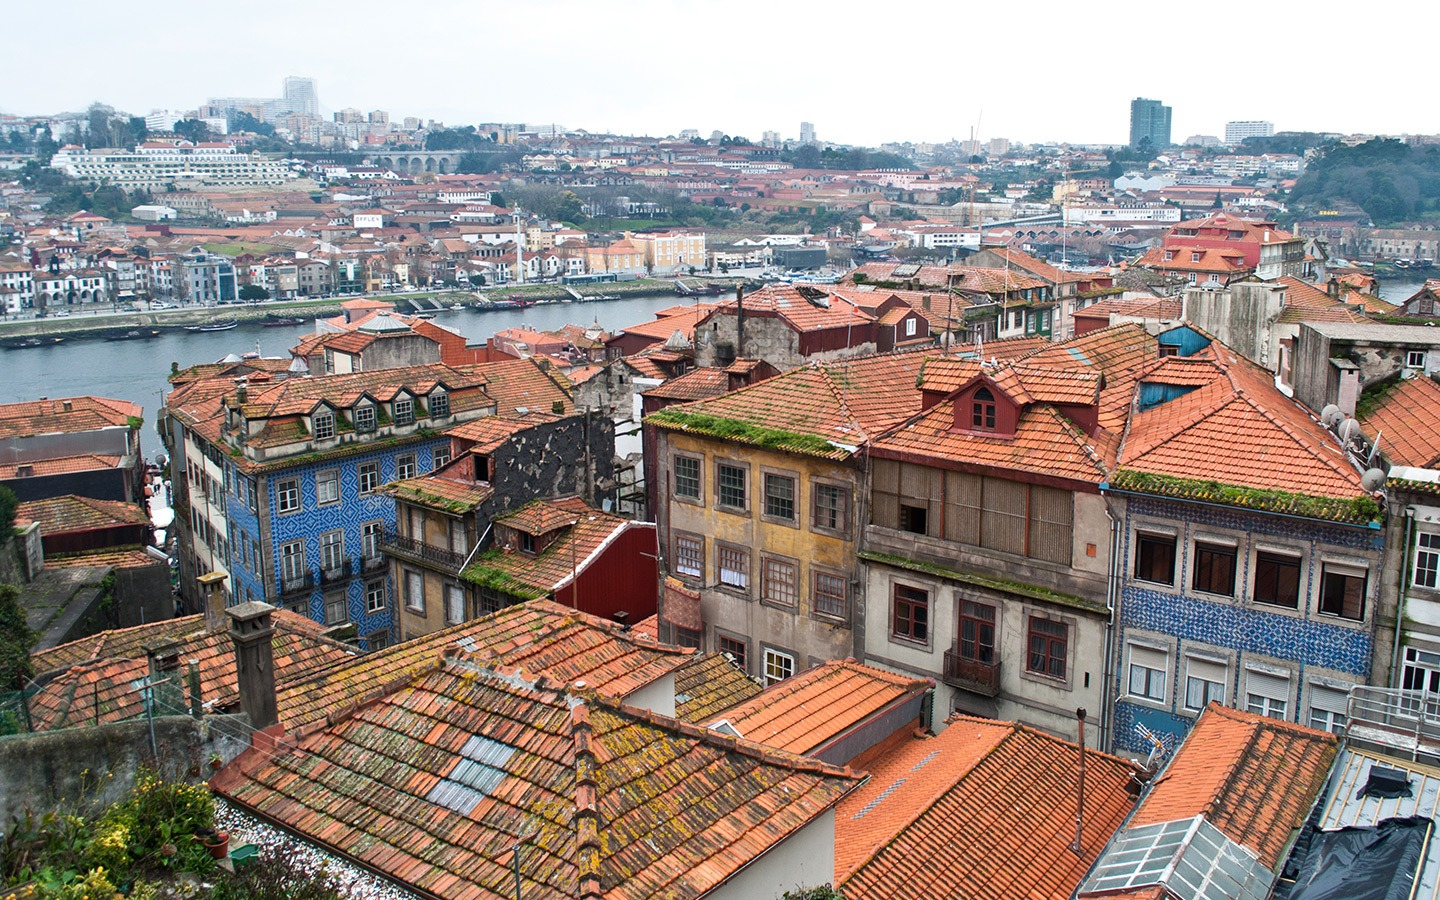 Rooftops in the historic Ribeira district of Porto